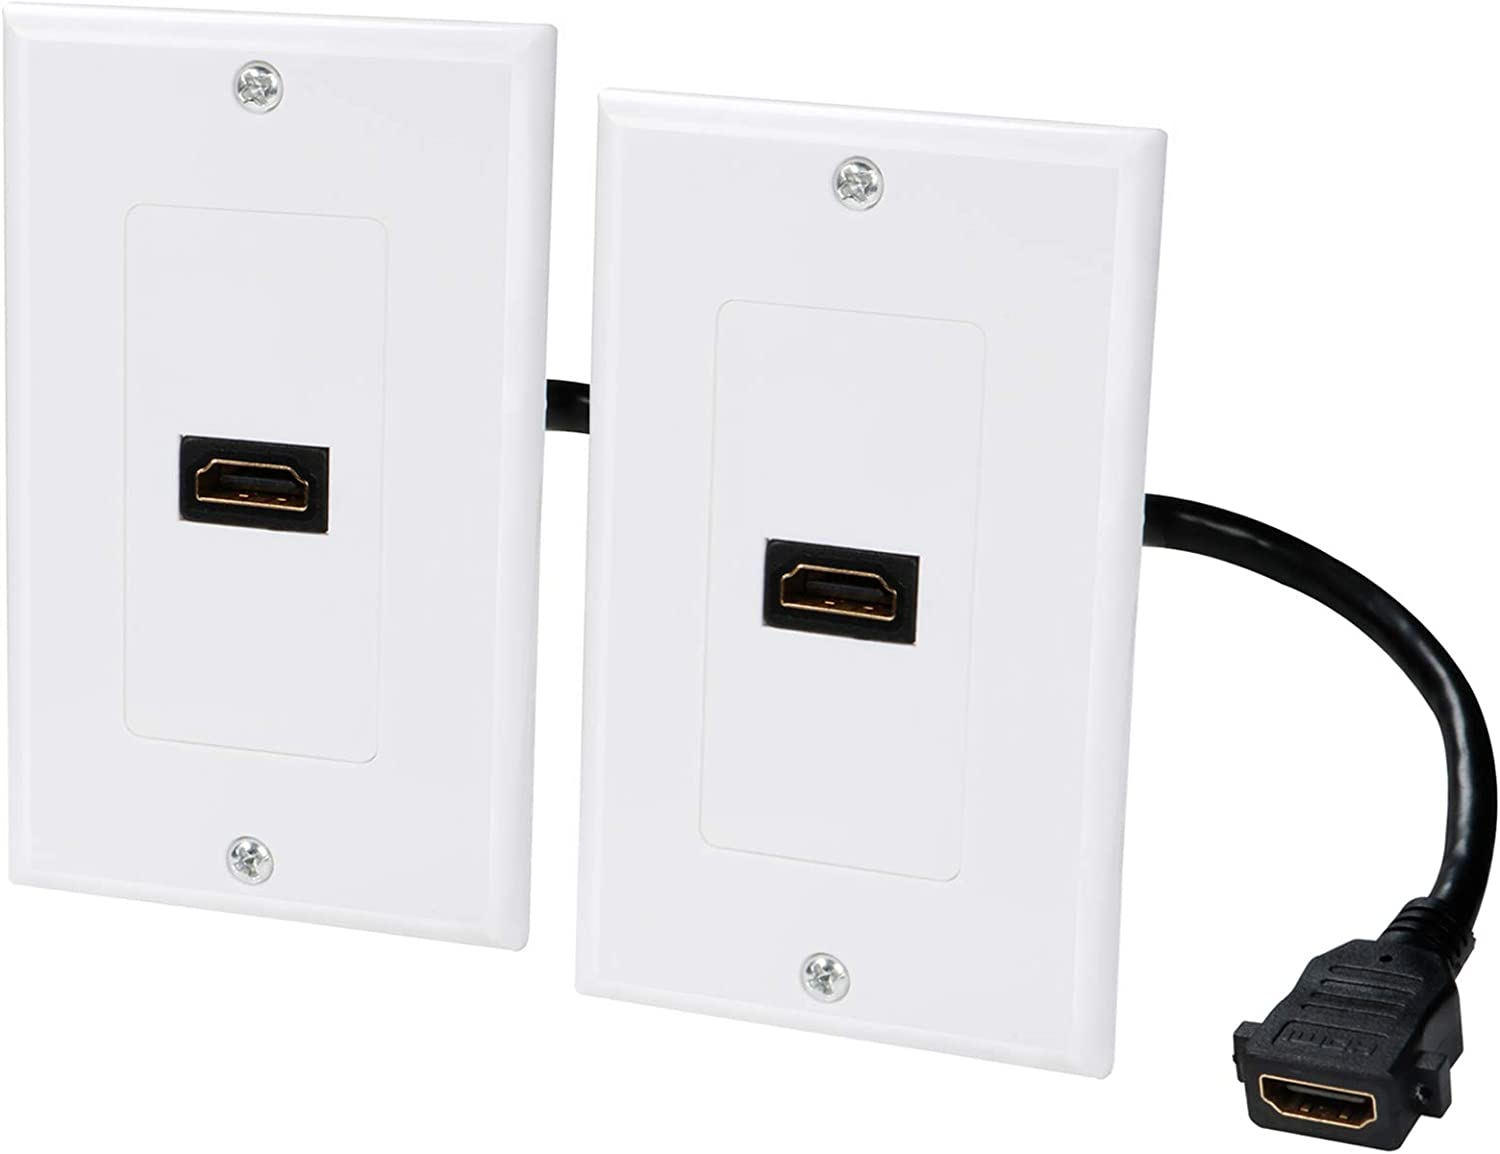 HDMI Wall Plate 1 Port 4k Single 2-Pack Minneapolis Mall S Regular store Outlet Faceplate